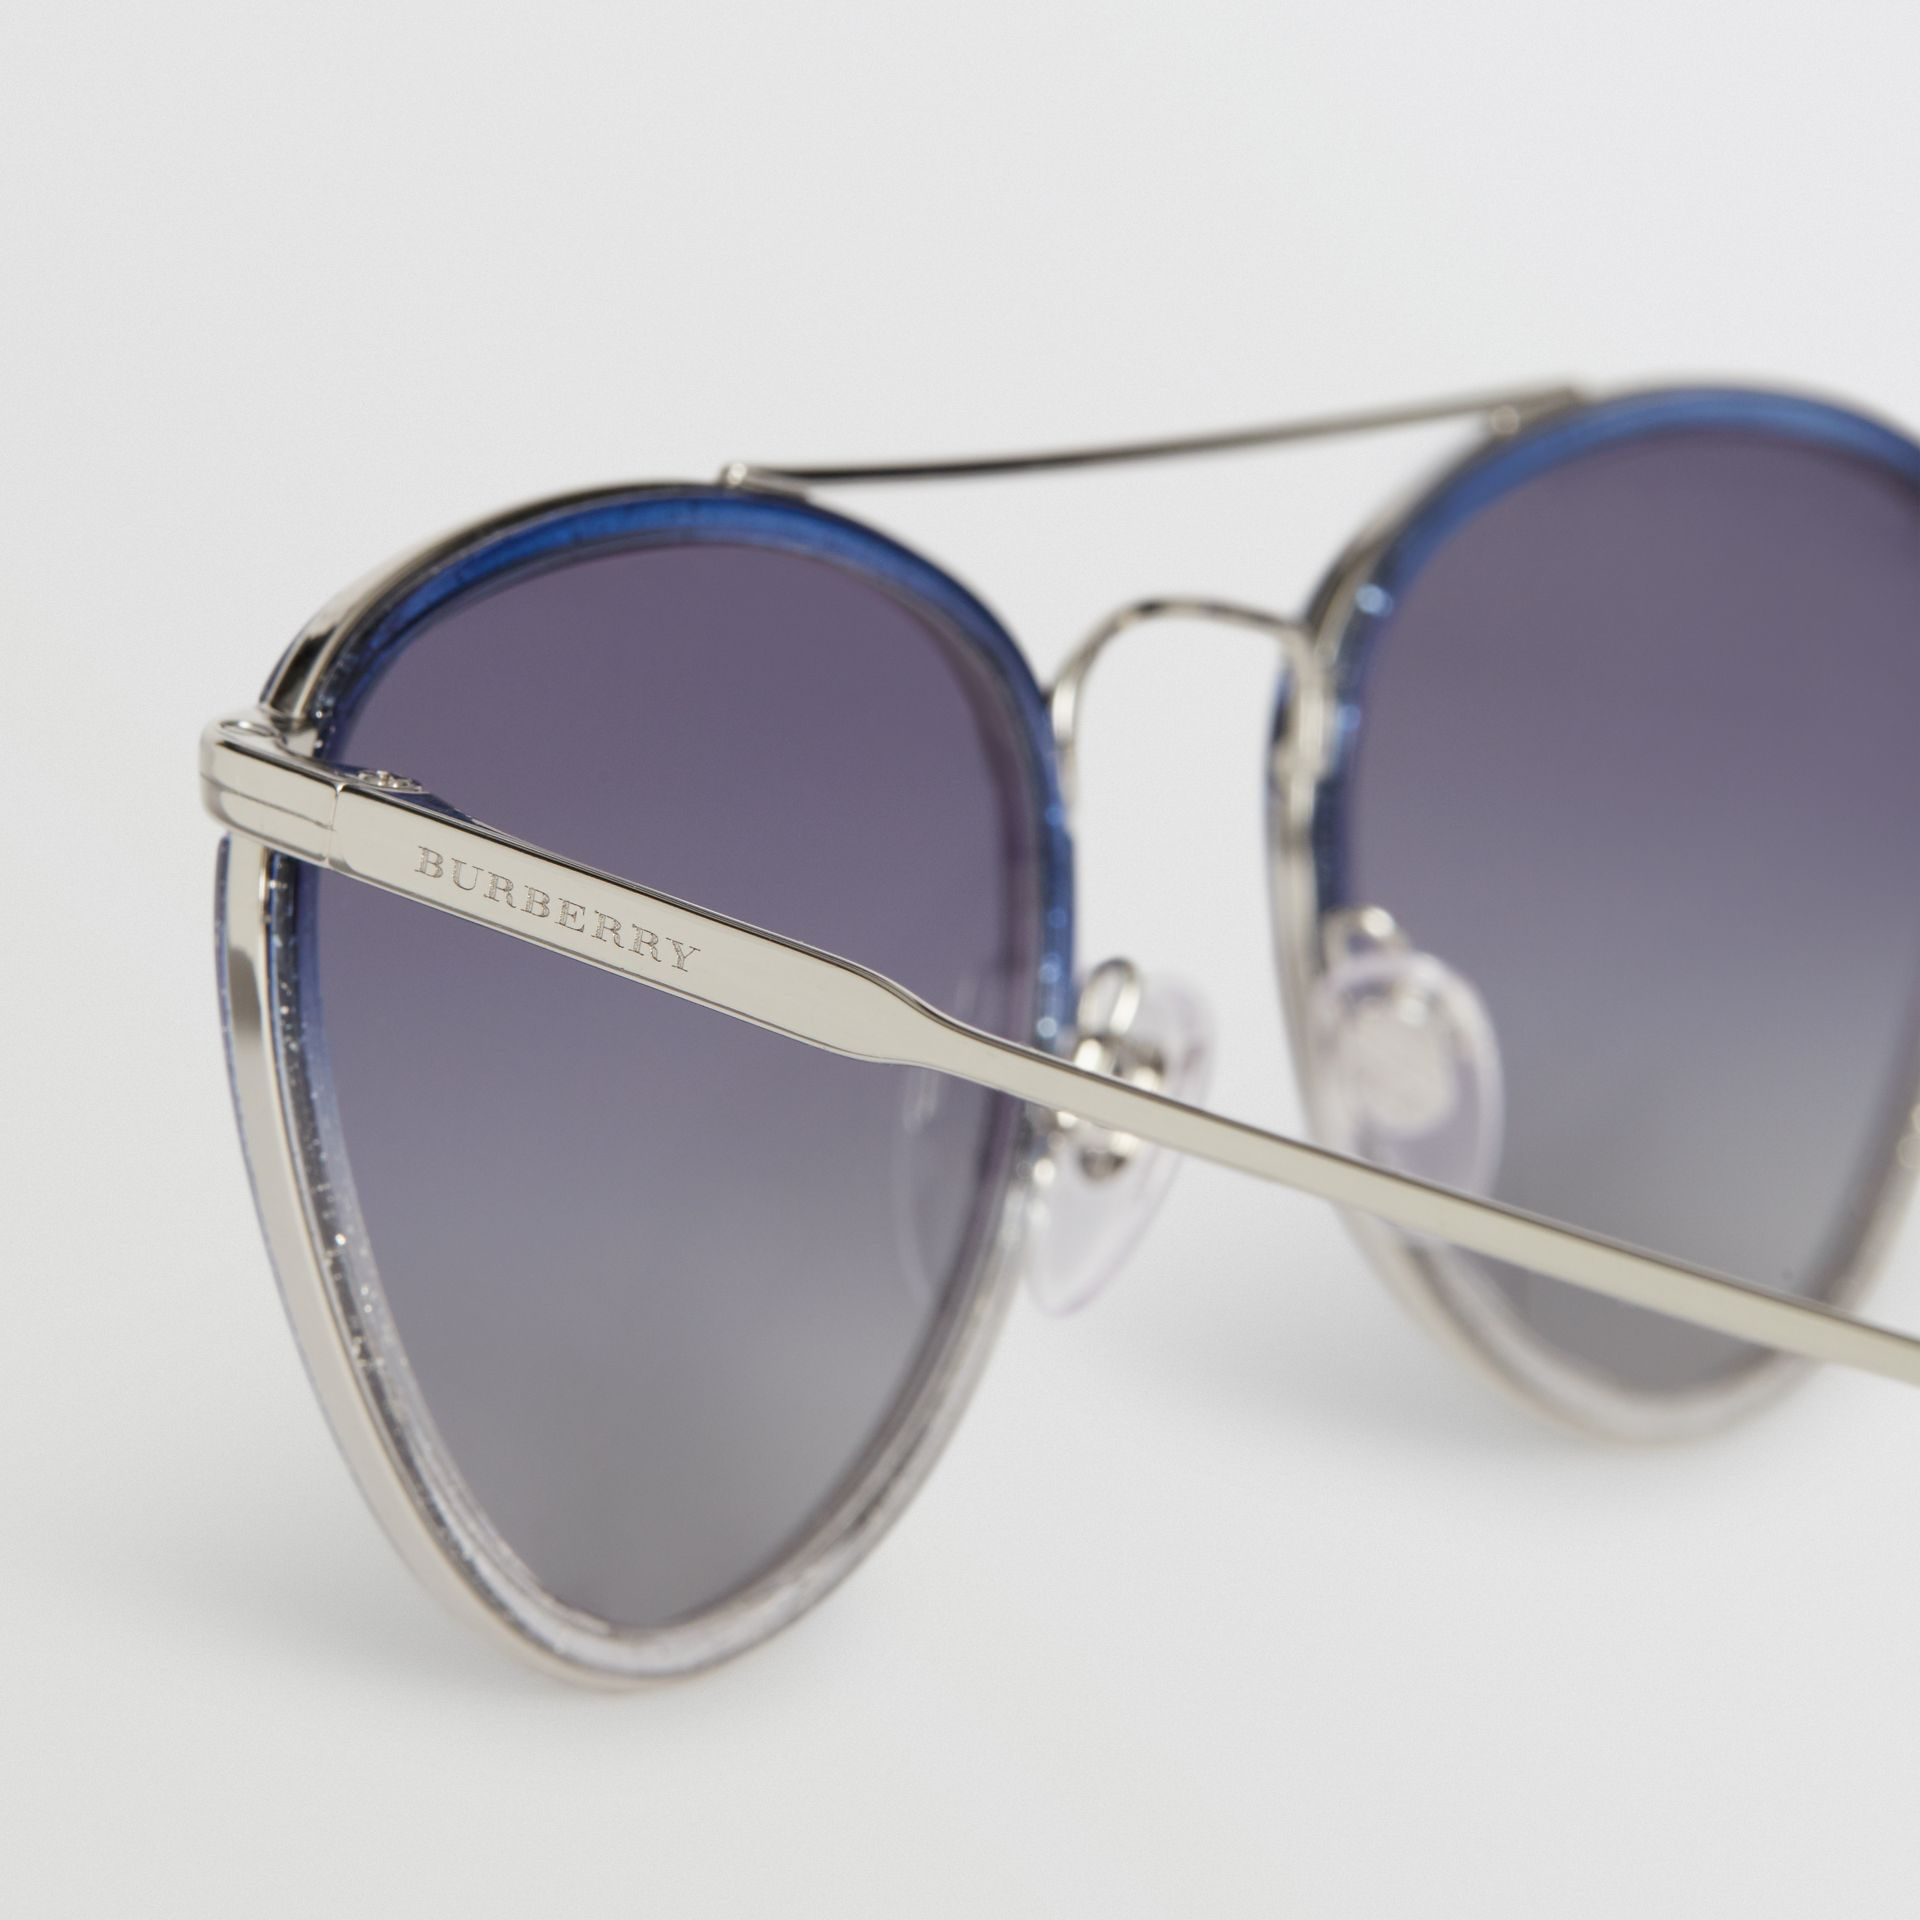 Glitter Detail Pilot Sunglasses in Blue - Women | Burberry Australia - gallery image 1